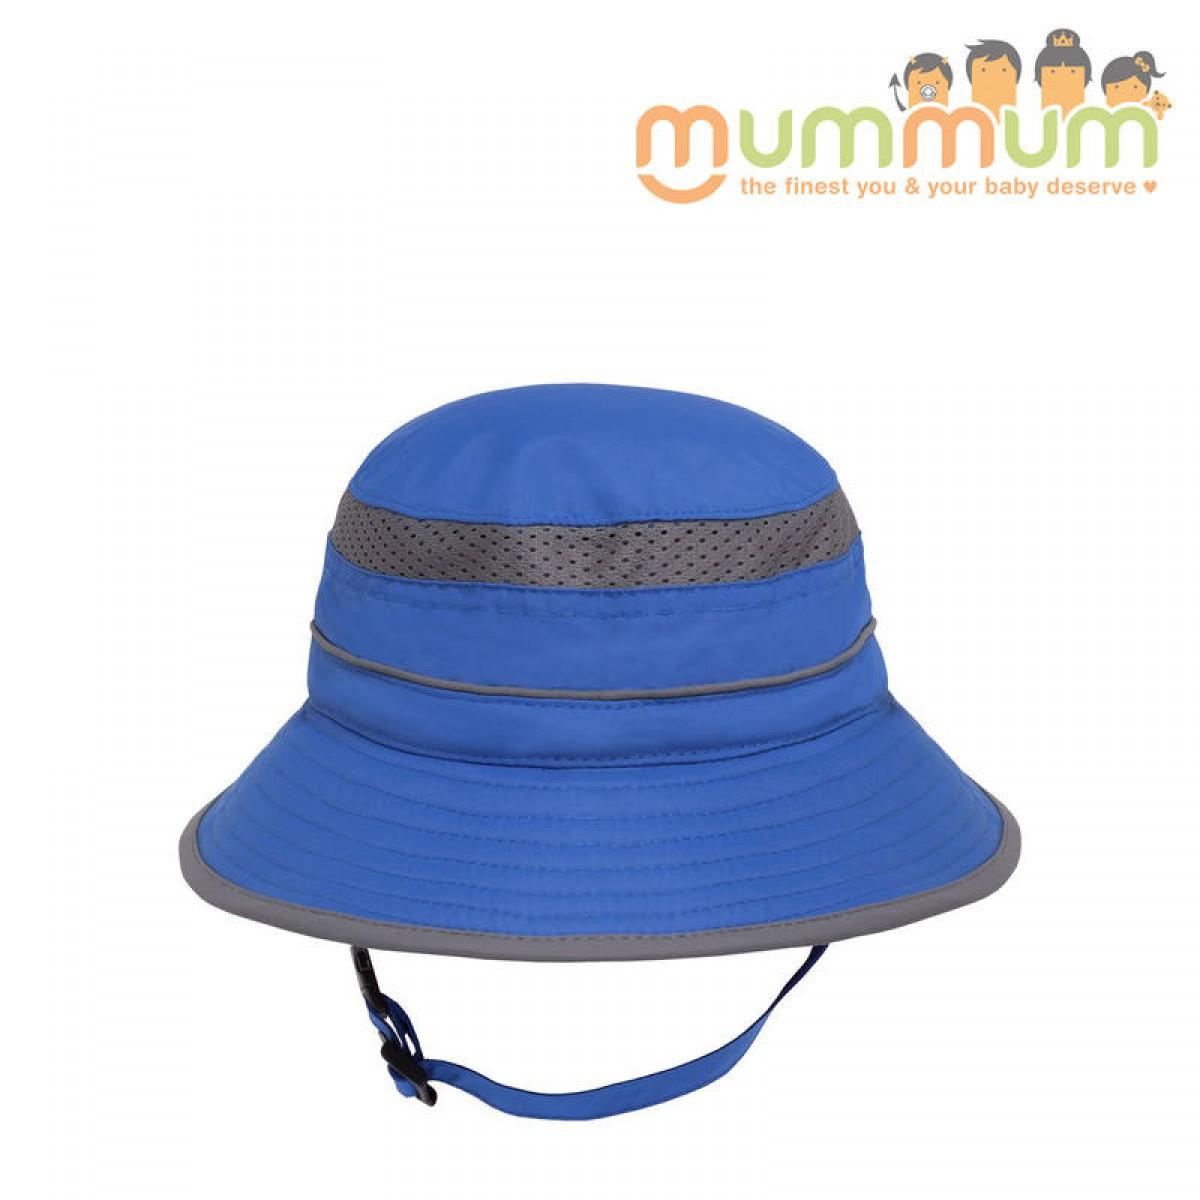 e419c91f Availability: In Stock; Product Code: Sunday afternoon kids play hats  reptile; Brand: Sunday afternoon